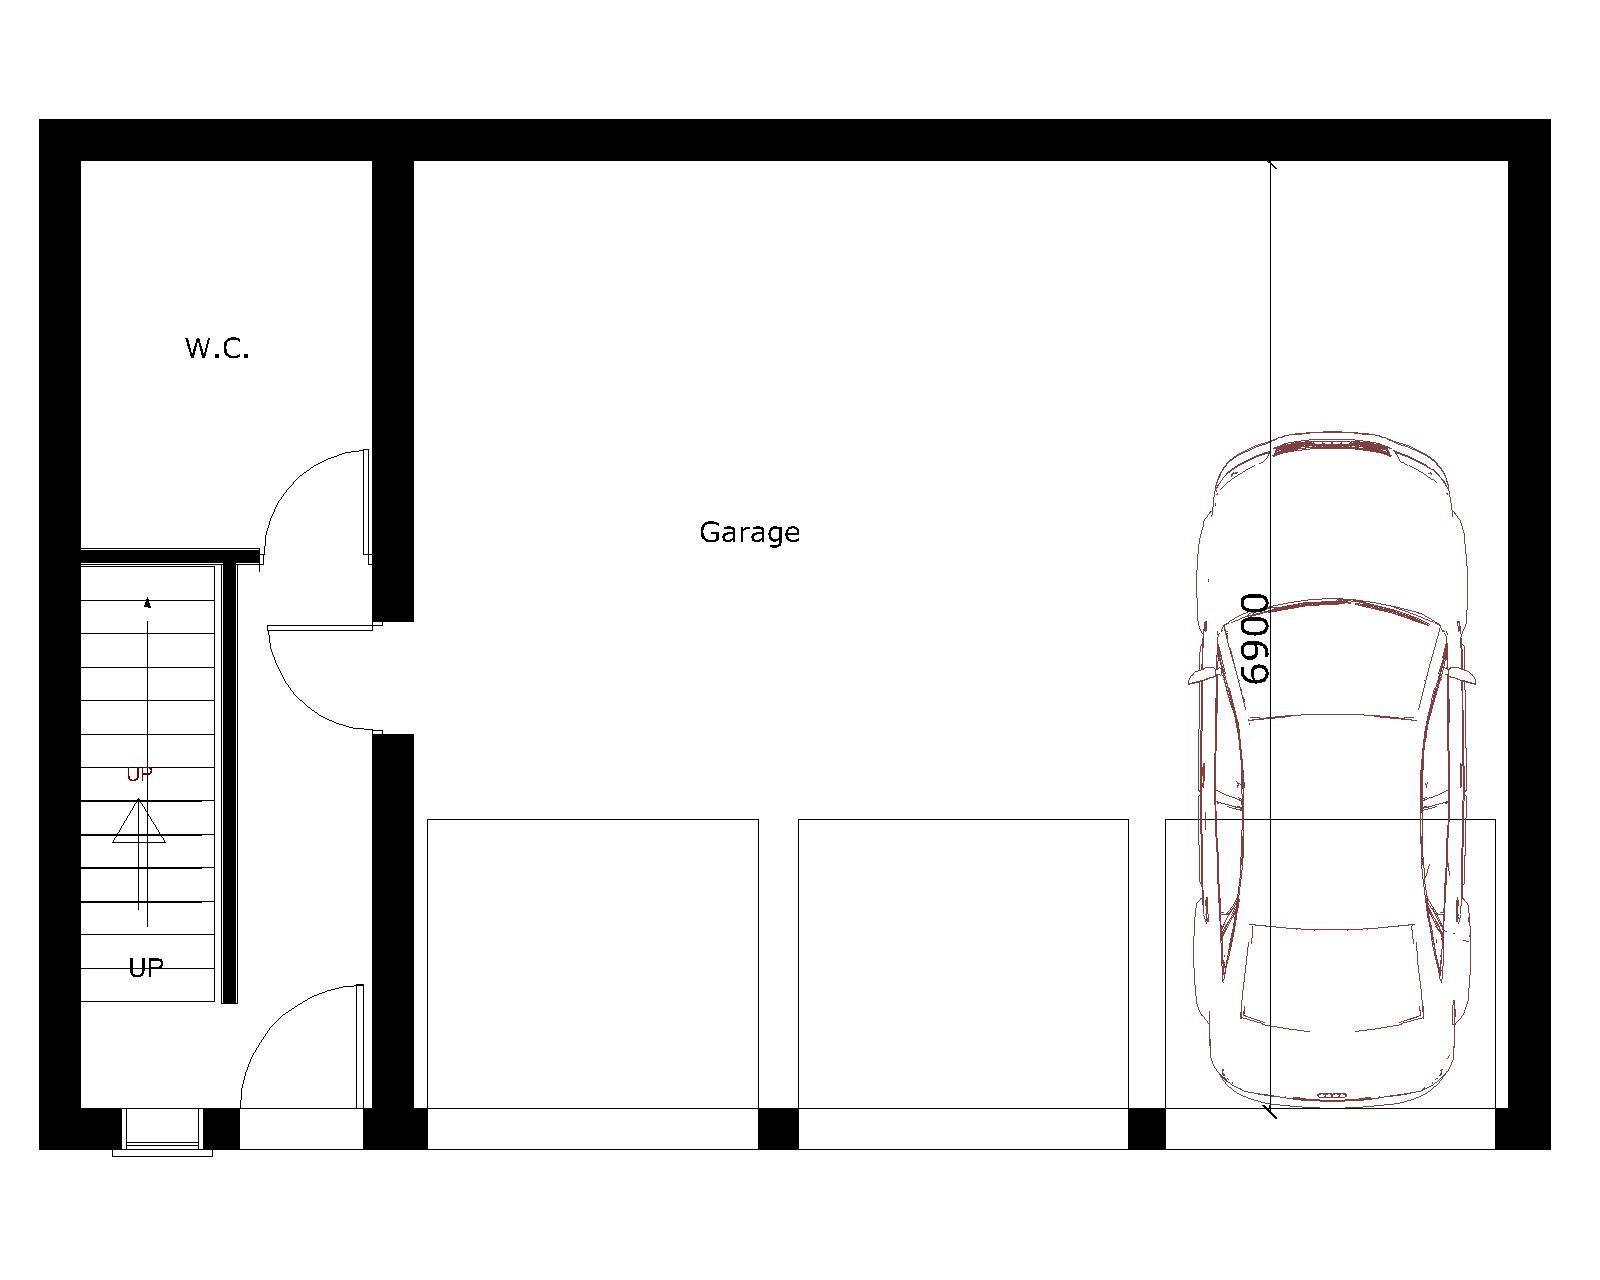 The arundel granny annexe plans houseplansdirect for House plans direct